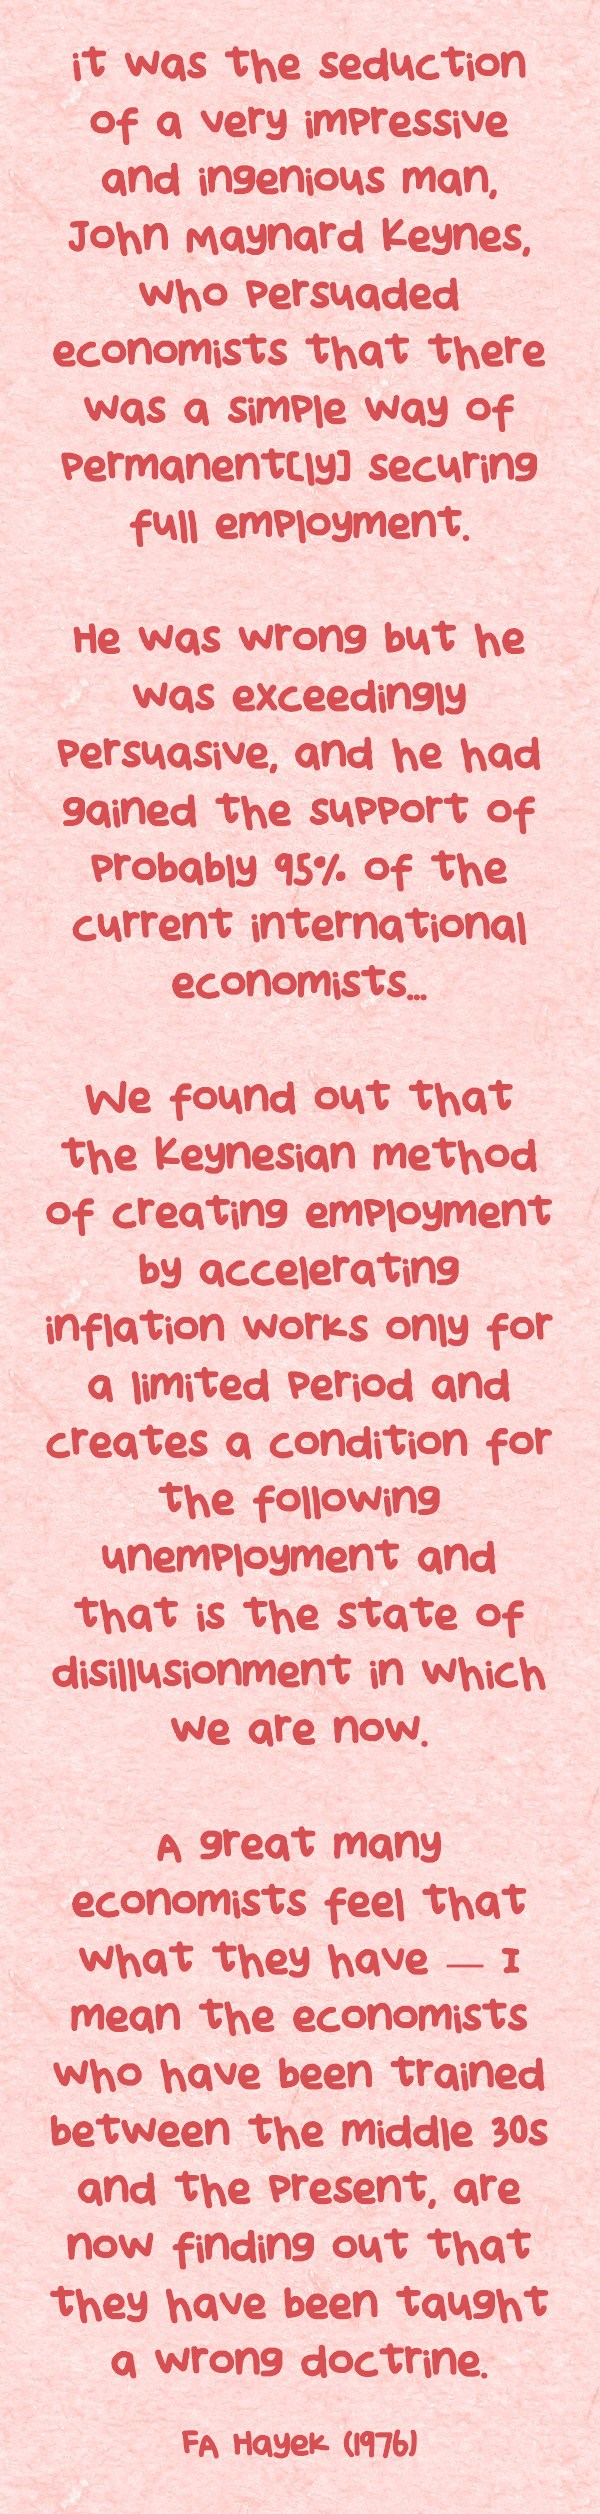 an essay on post-keynesian theory a new paradigm in economics